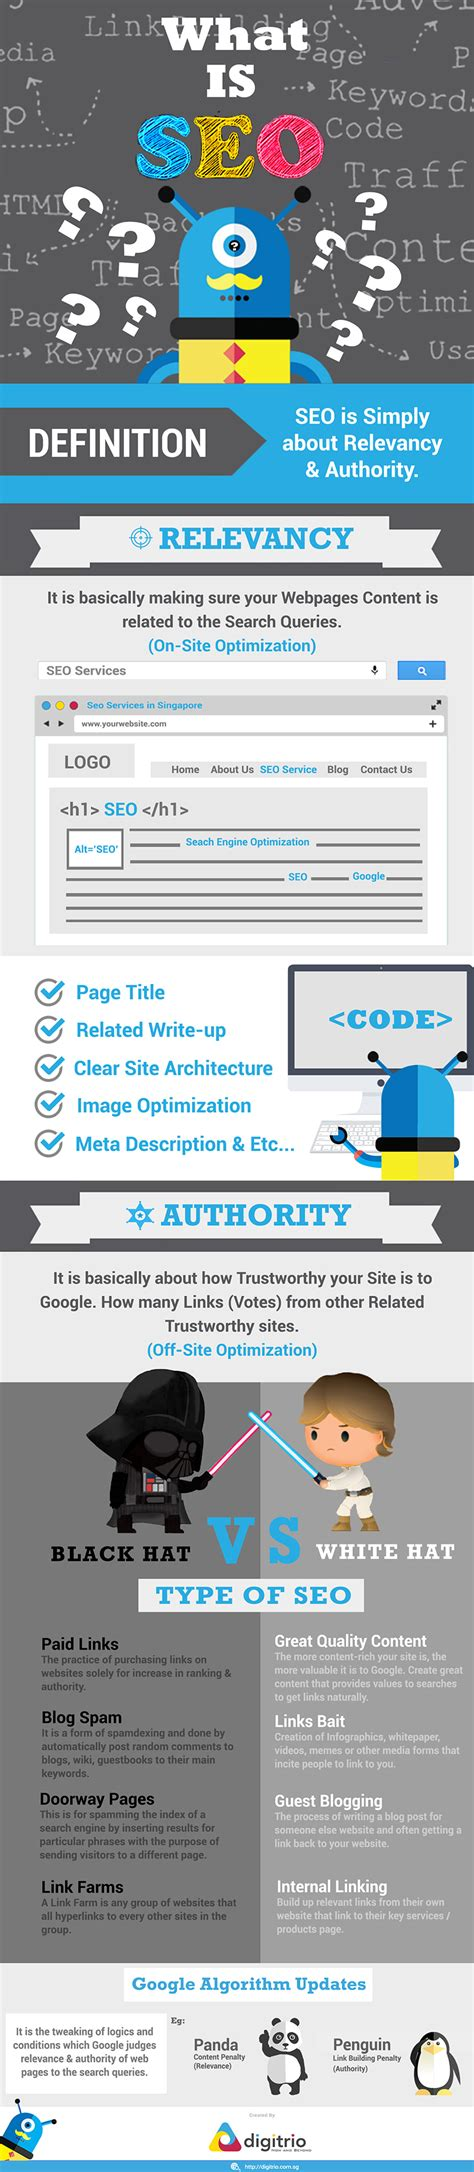 Seo Explanation 5 by Seo Infograph Presents The Essential Aspects Of Search